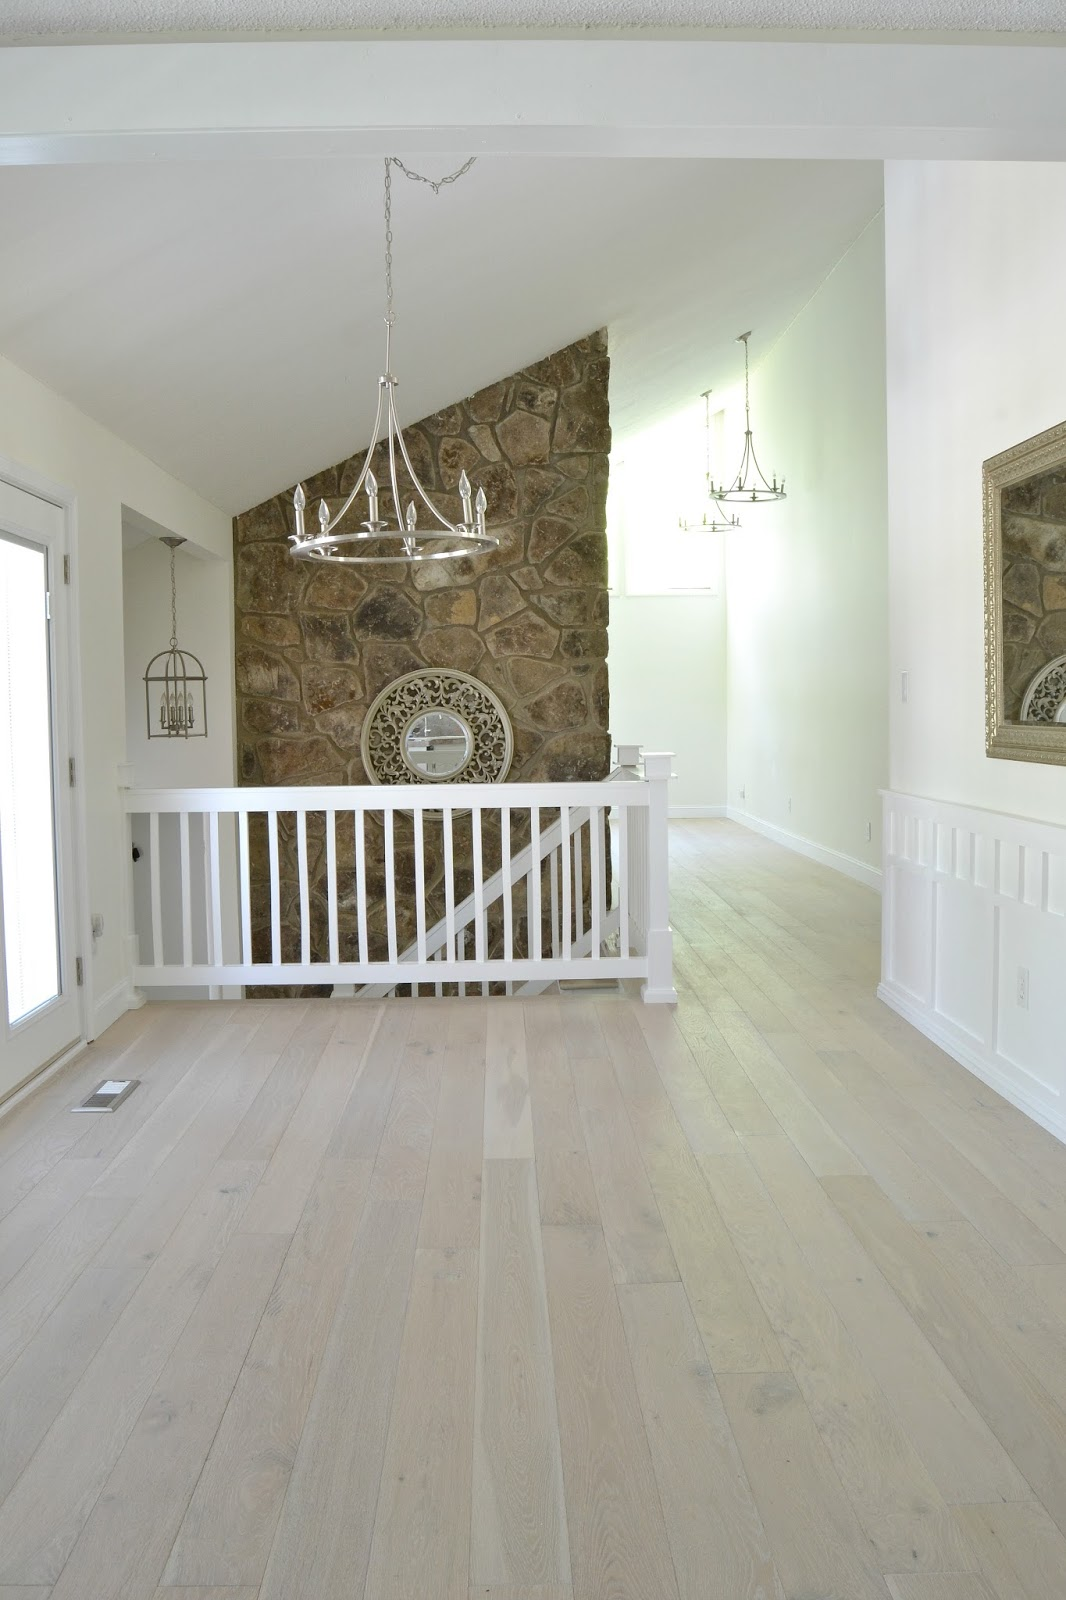 It ... - LiveLoveDIY: Our New White-Washed Hardwood Flooring (and Why We